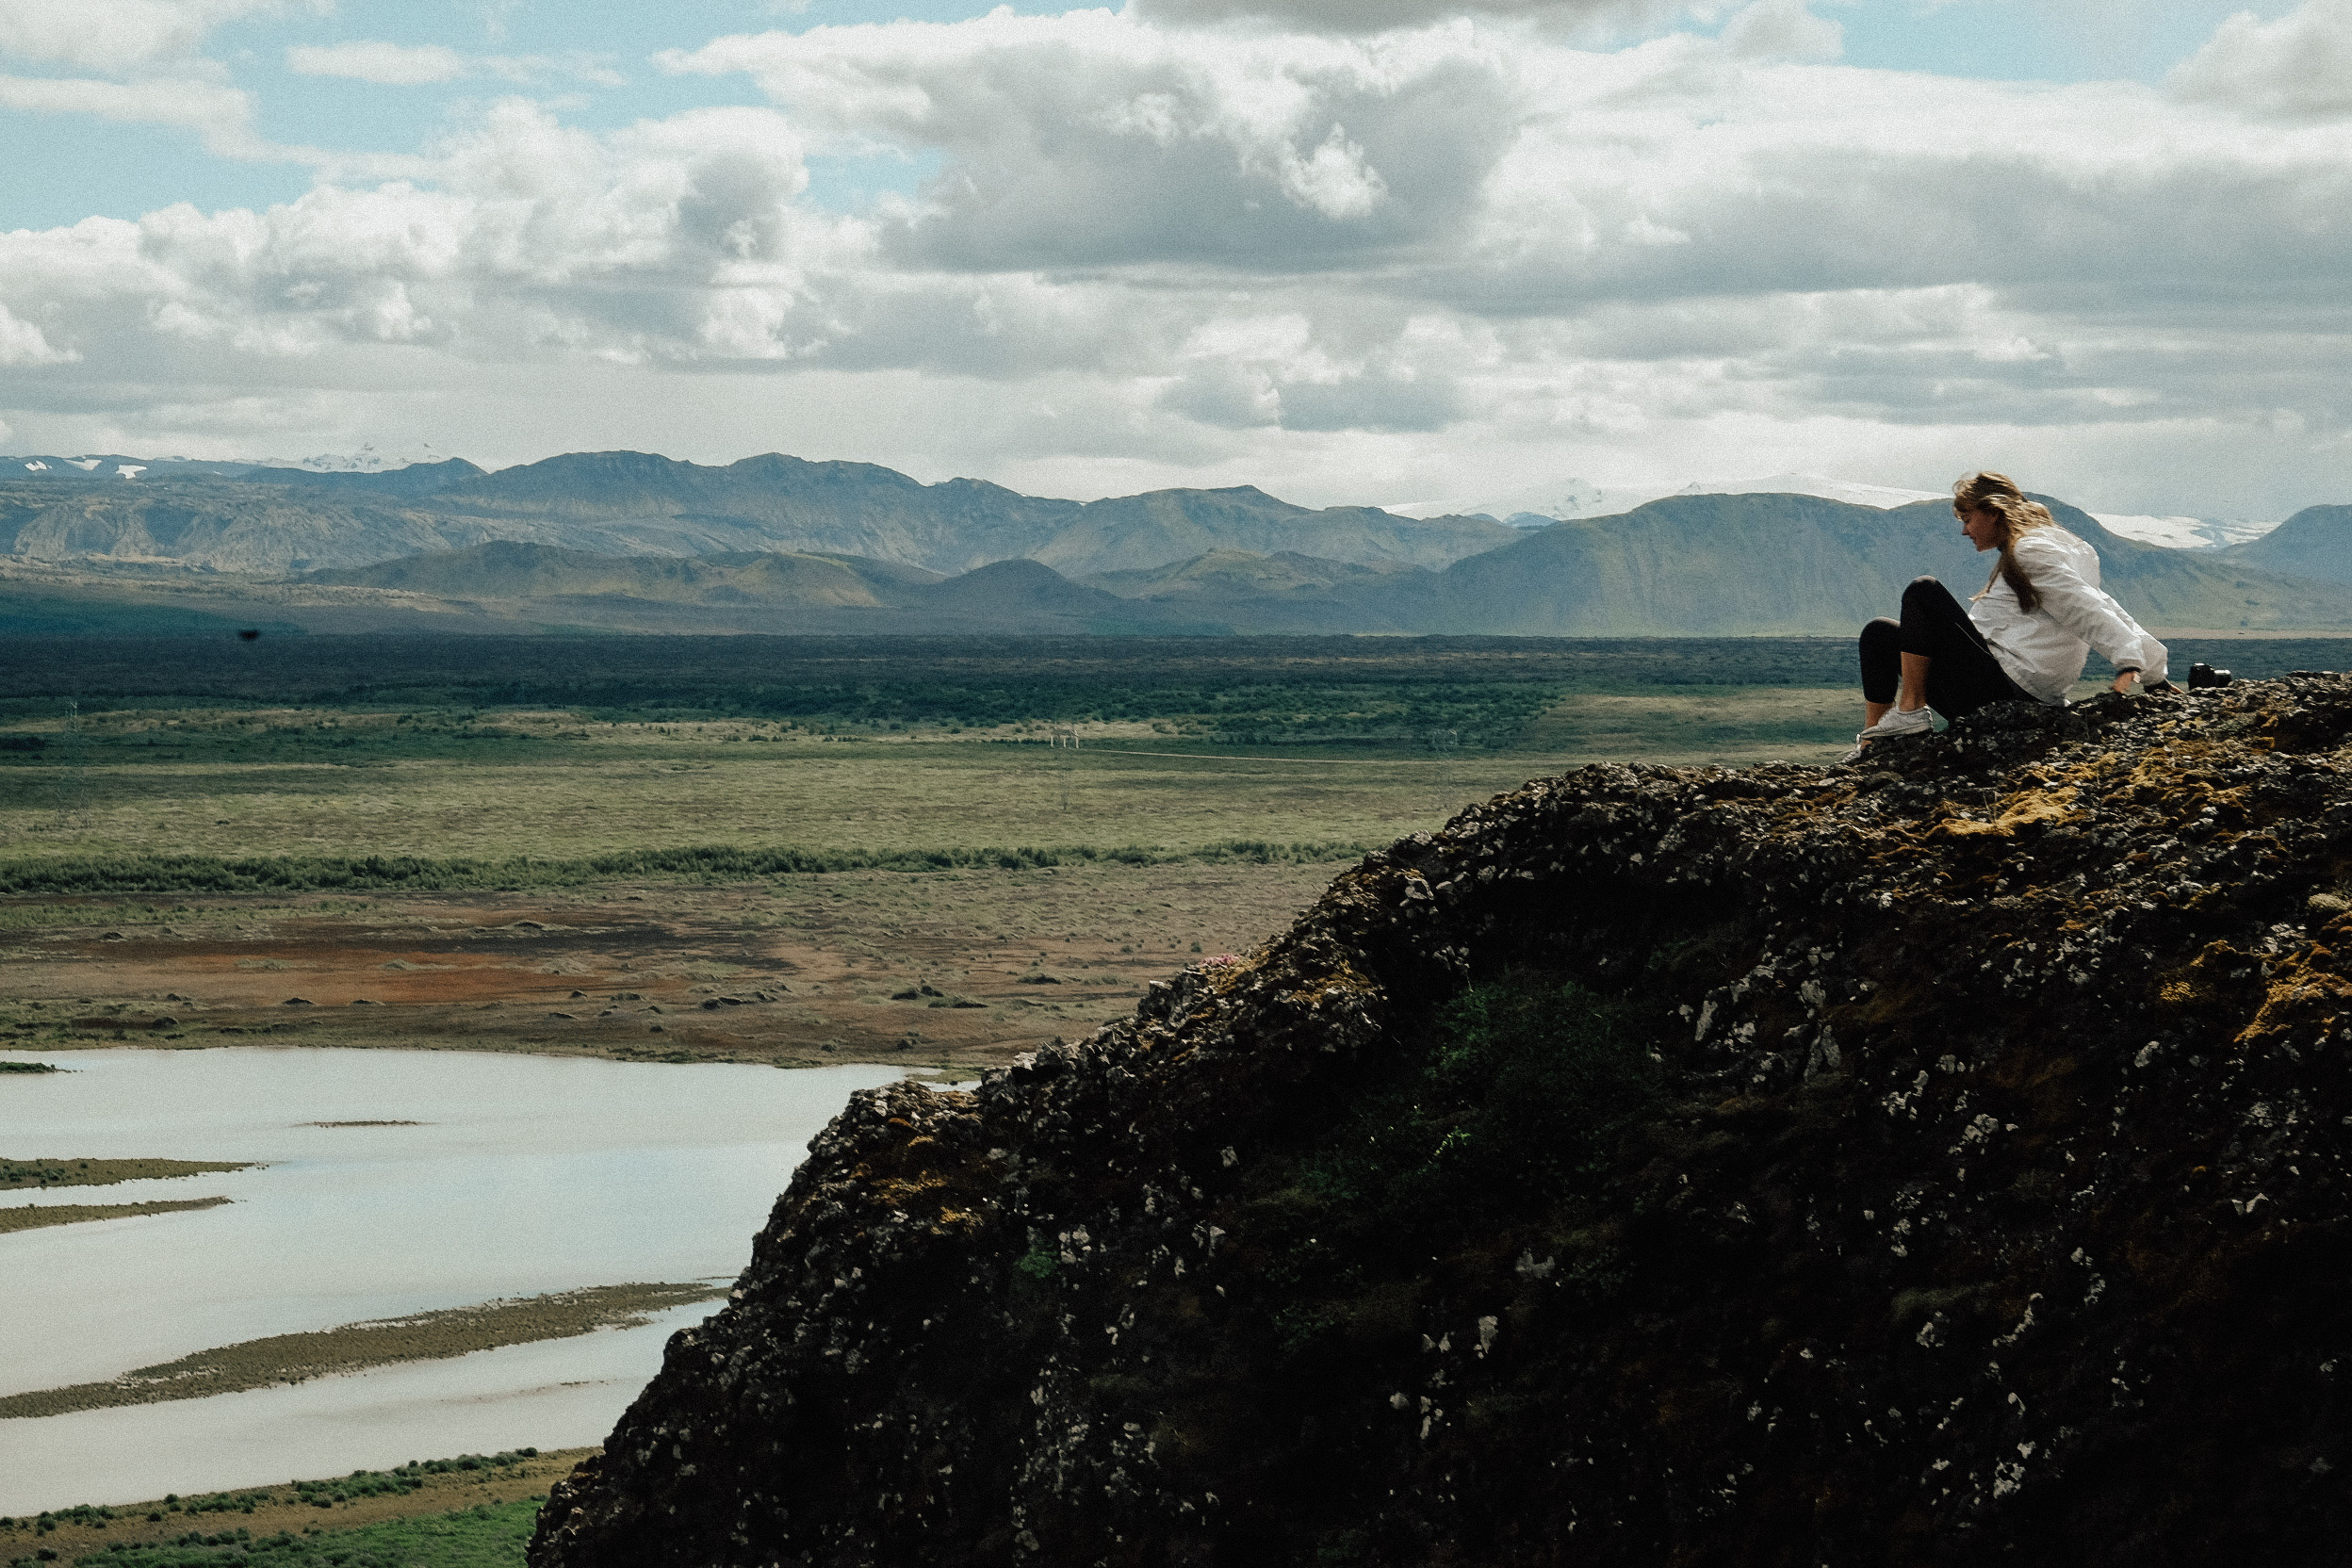 Life motto for touring Iceland... always take off on random backroads, we ended up finding views like this to picnic at just by detouring on a whim.